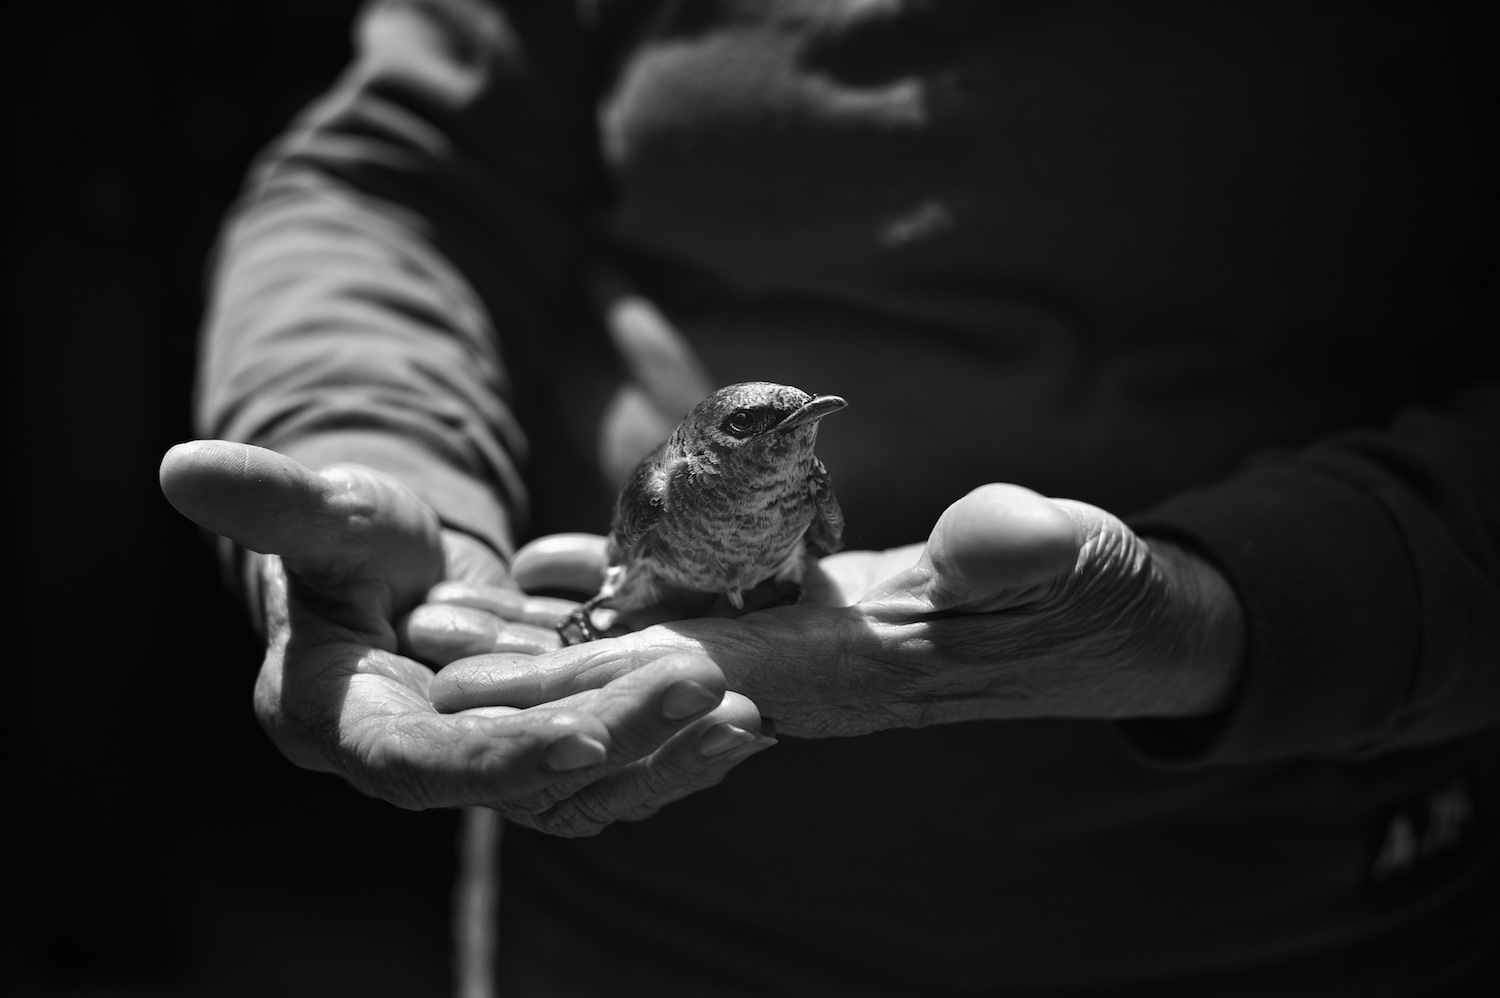 Black and White Photograph, Bird, Hands, Midwest,Interior Design, Wall Art